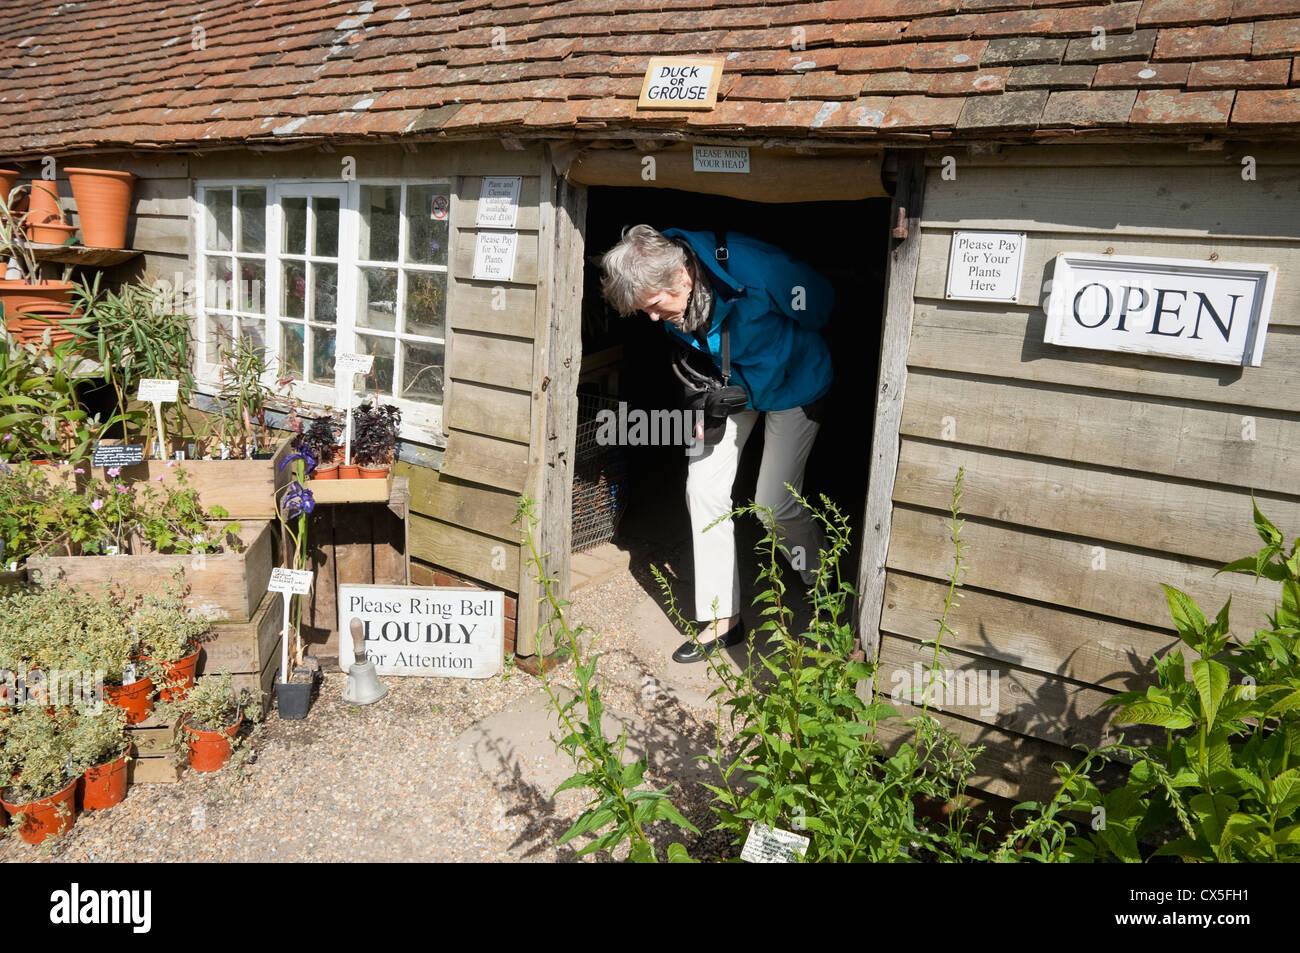 Nursery Plant Shop with low doorway and sign over saying 'Duck or Grouse' - at Great Dixter Garden, Sussex, - Stock Image